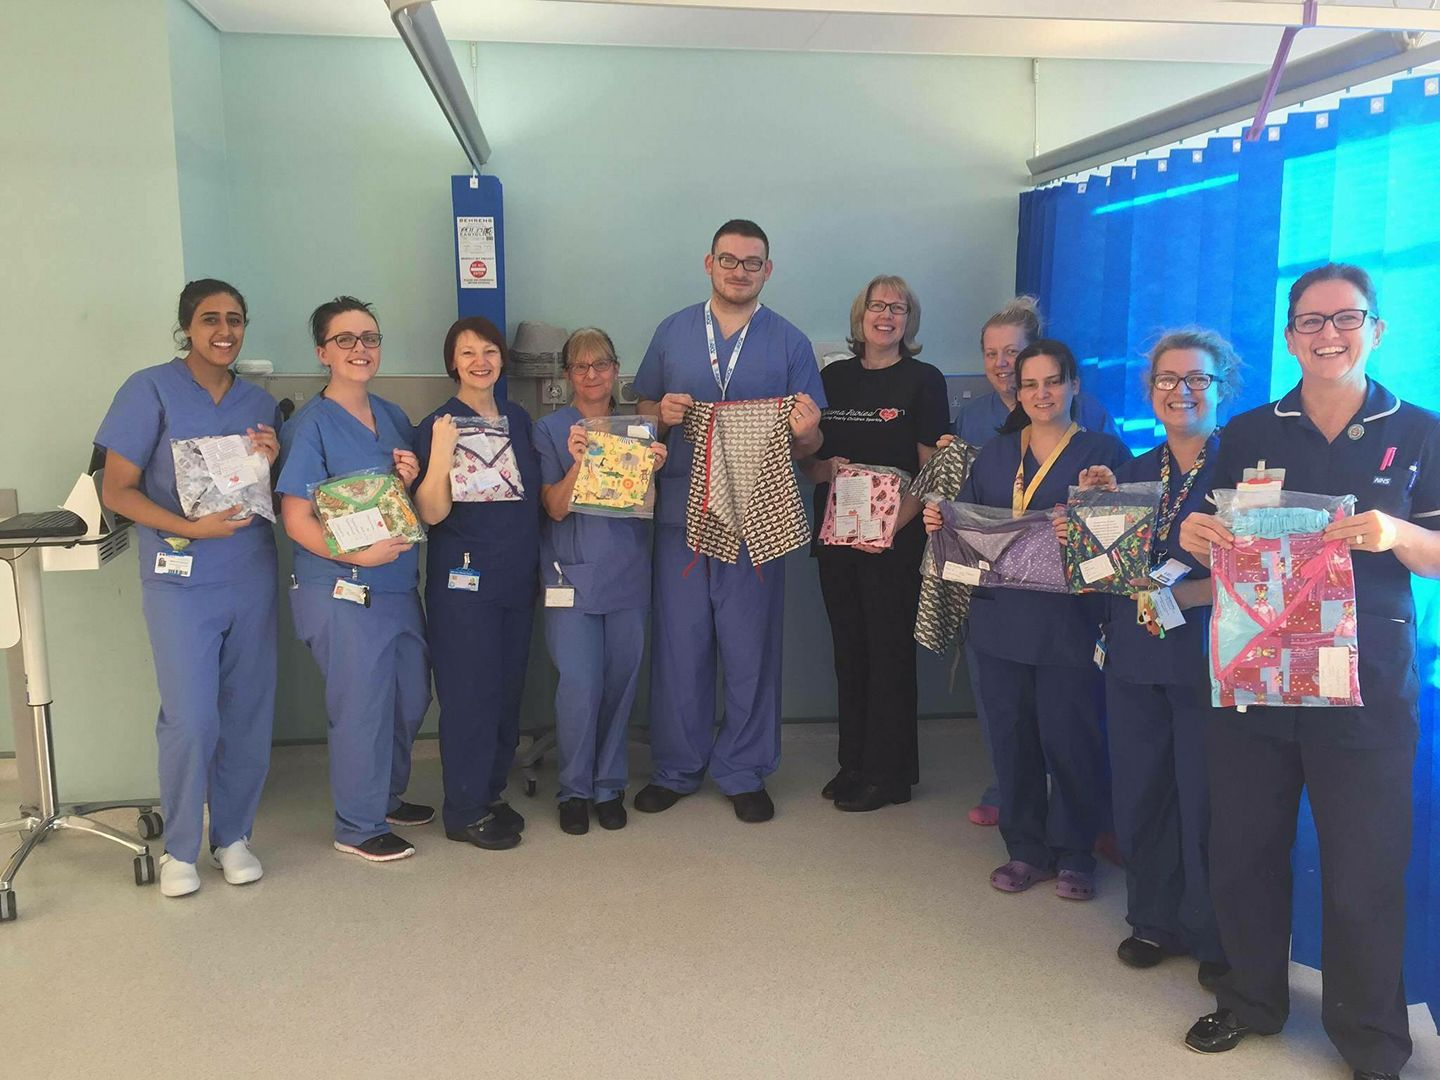 box full of pjs and gowns to the day surgery unit at Huddersfield Royal Infirmary